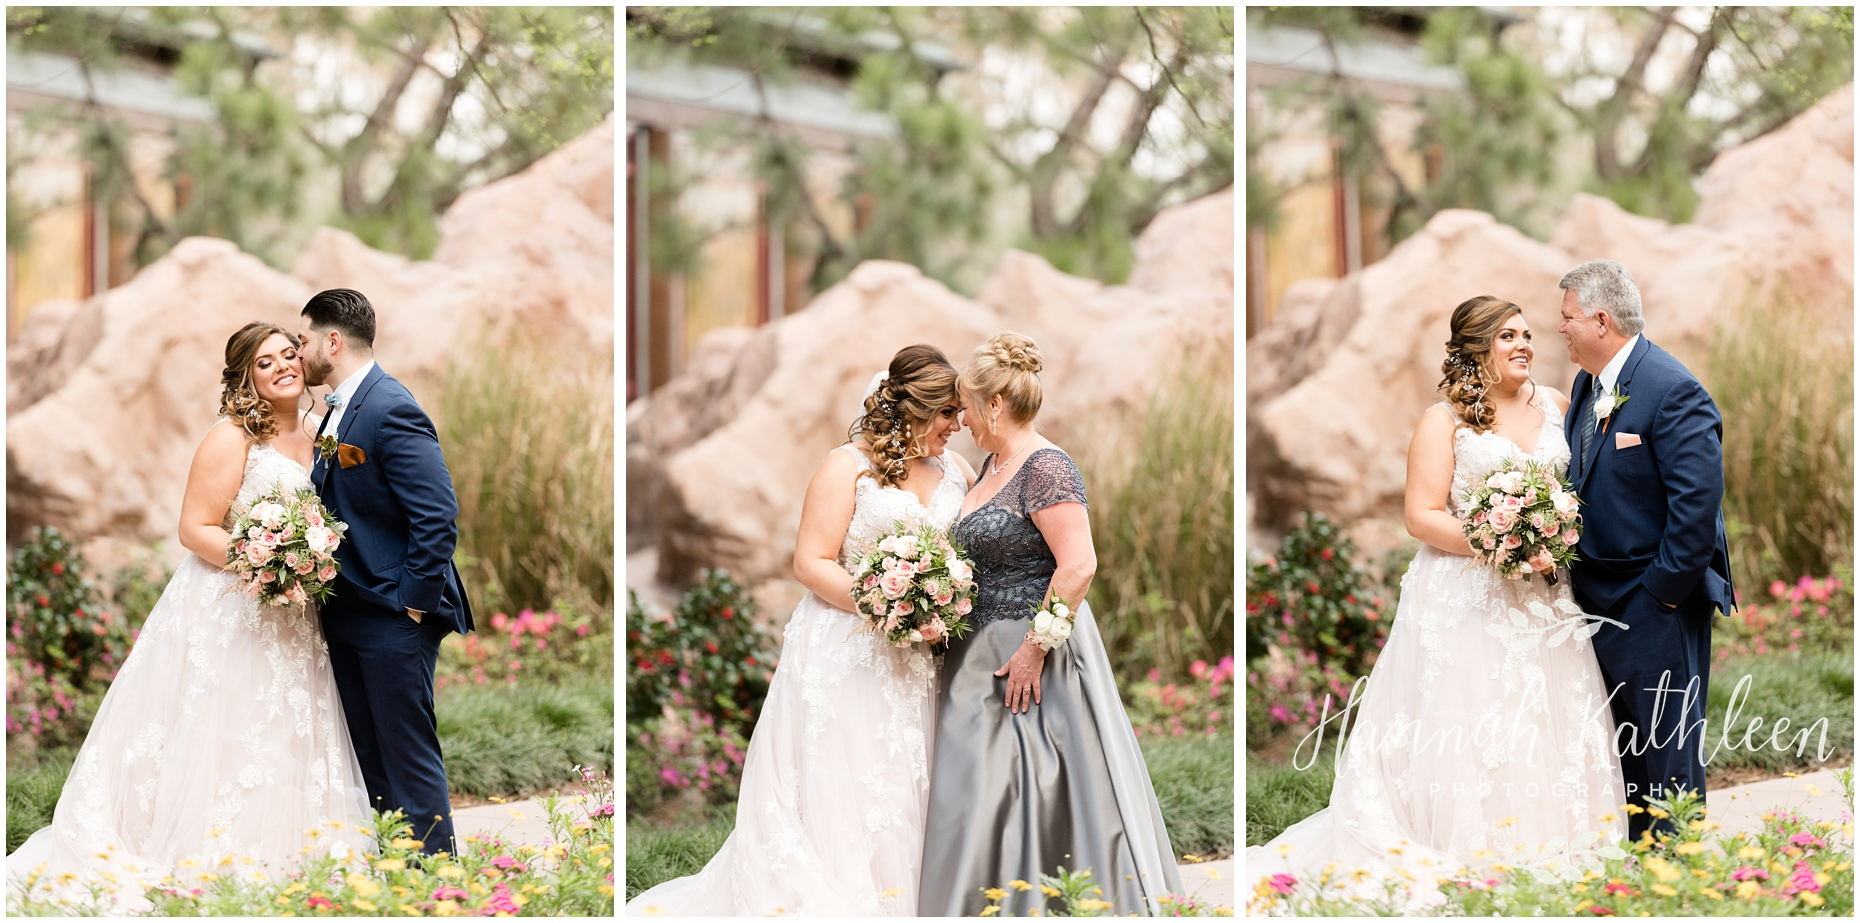 Ryan_Courtney_Disney_Parks_Wedding_Pavilion_Photographer